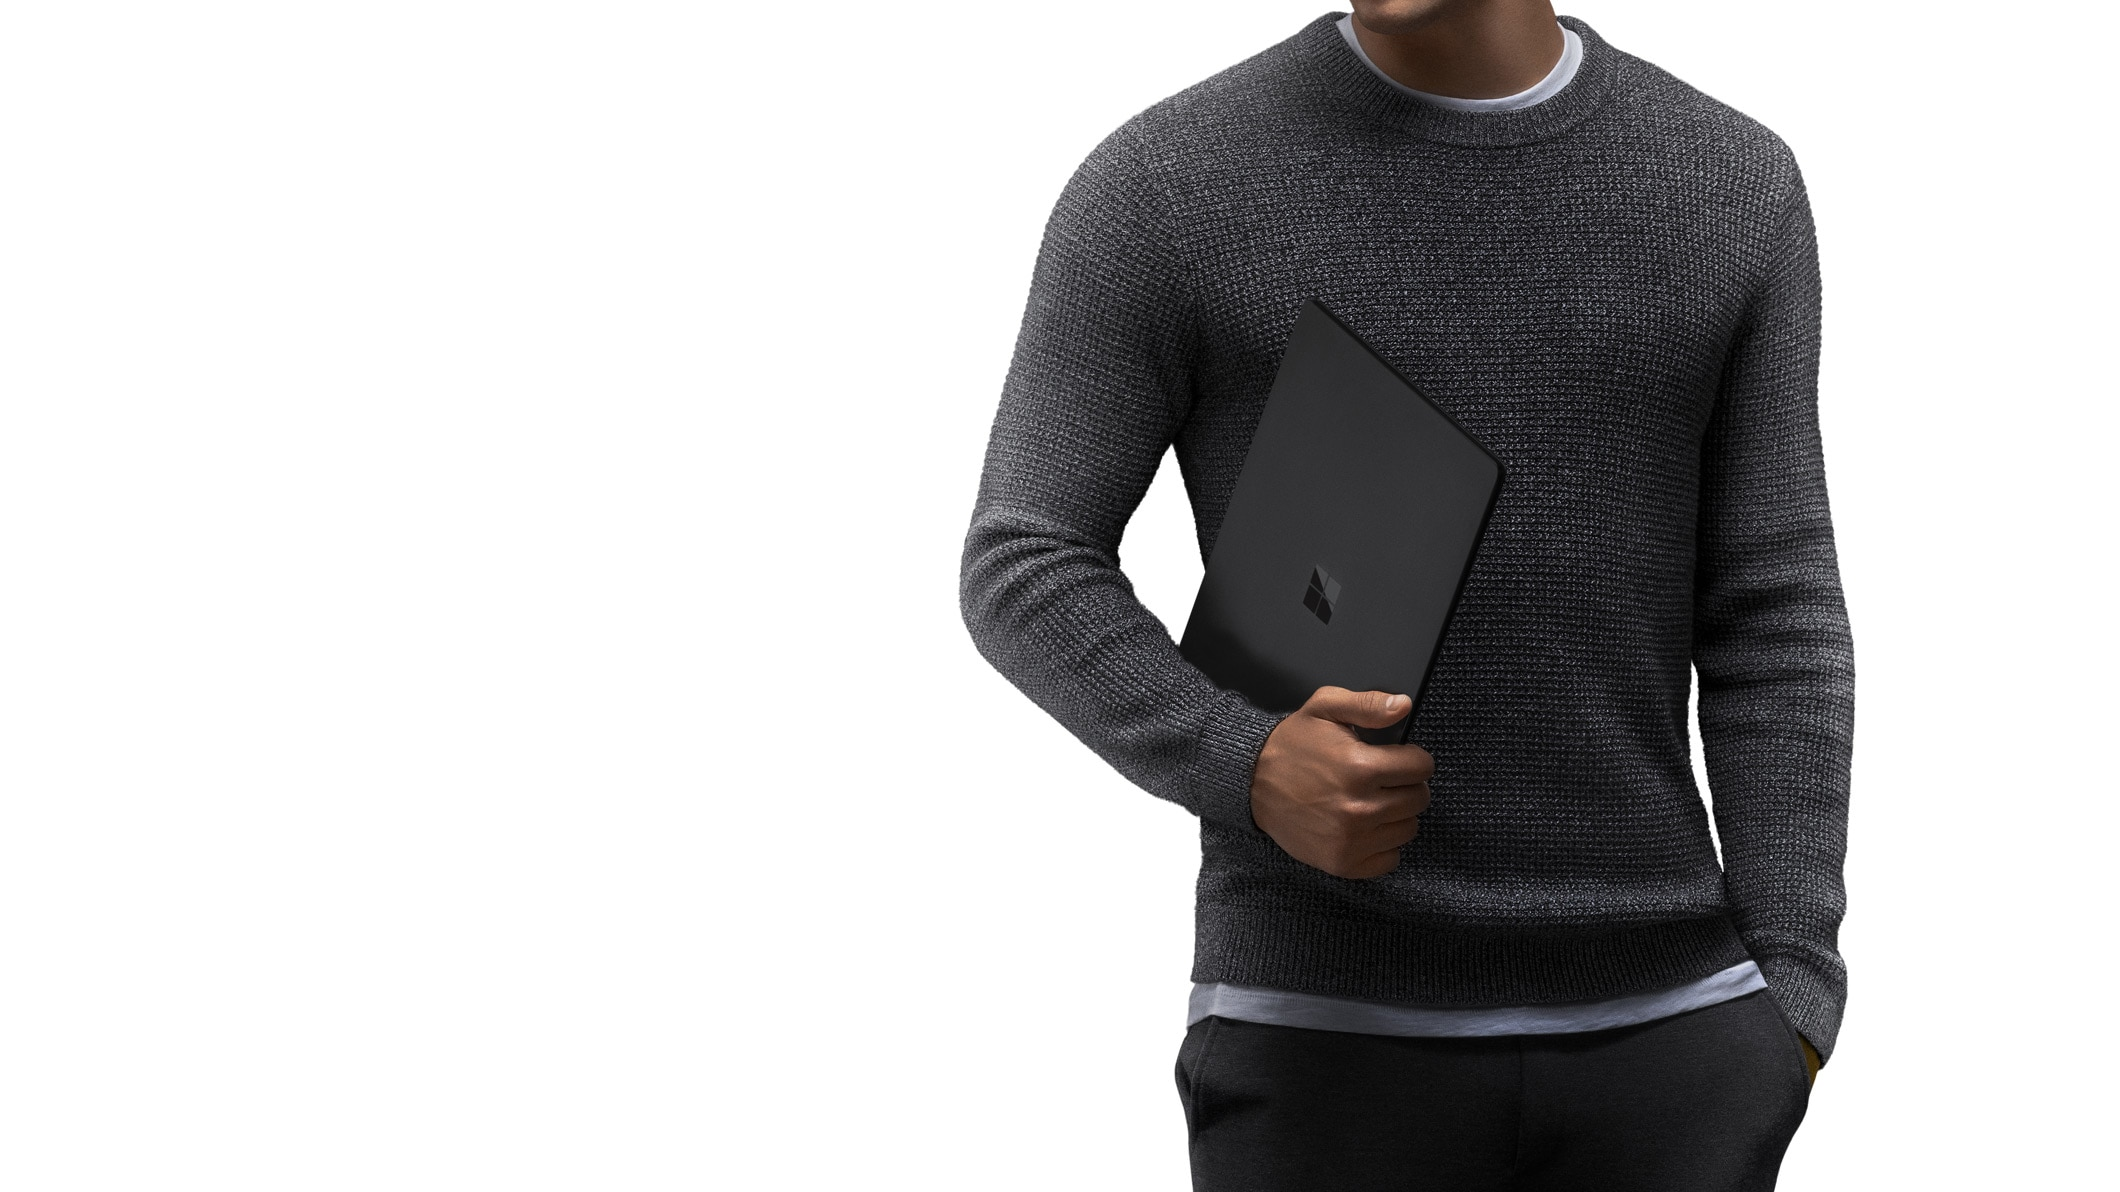 A man in a grey sweater carries Surface Laptop 2 in Black in the crook of his arm